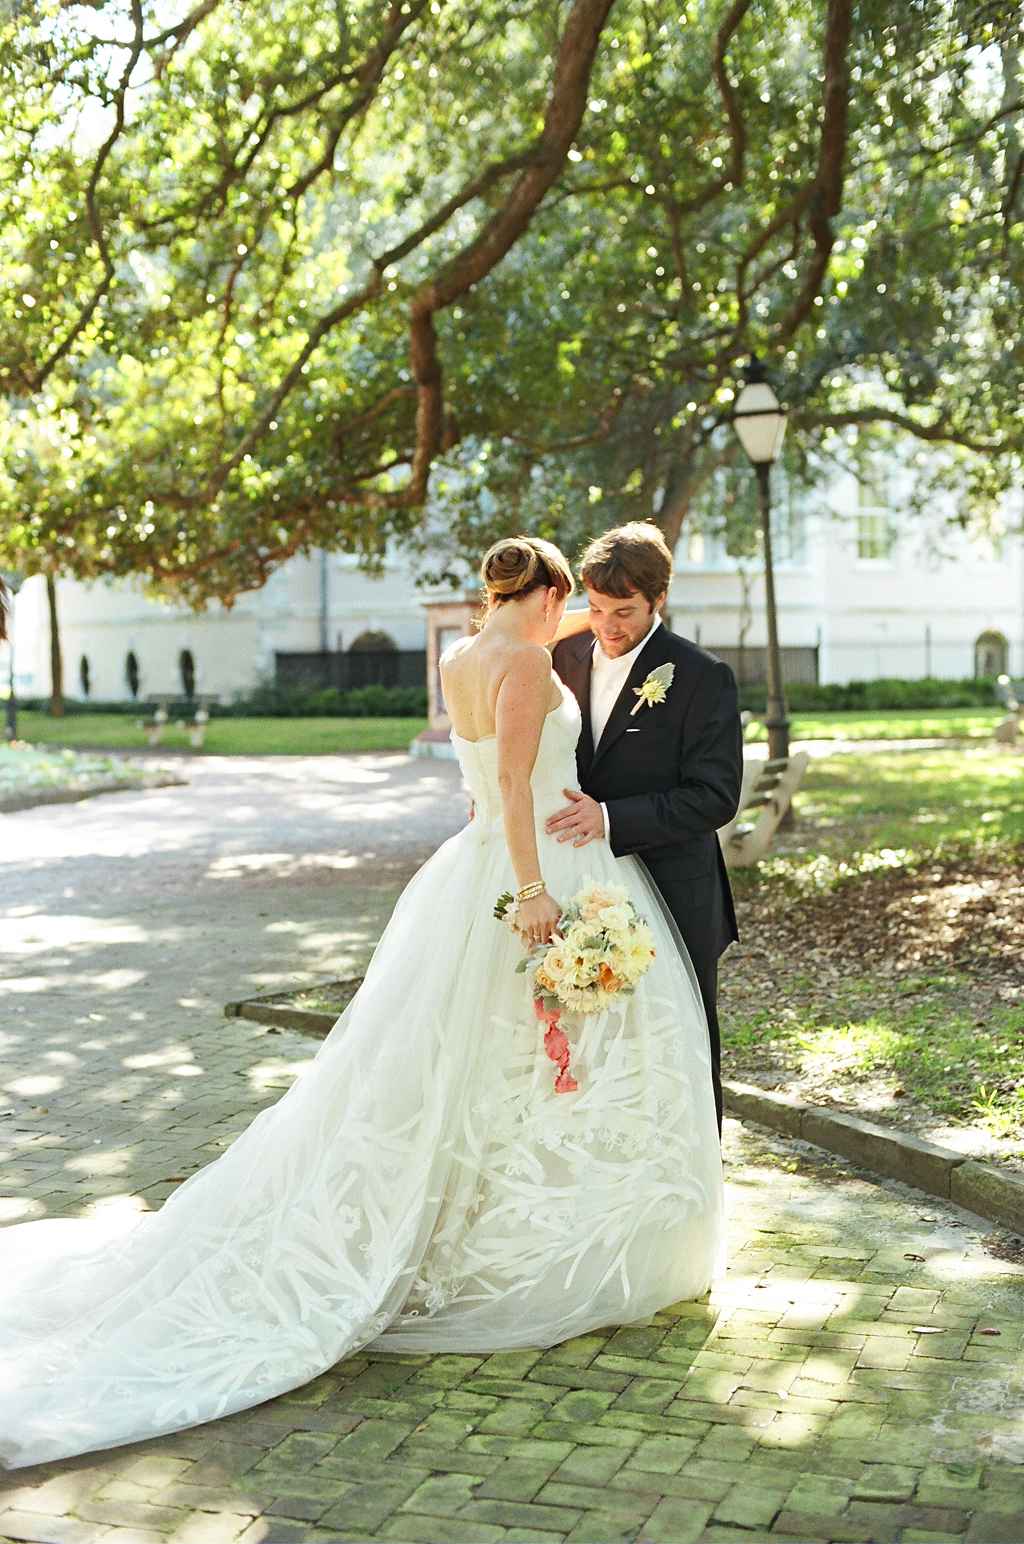 """The bride wore an avant-garde strapless Carolina Herrera gown with layers of tulle that was hand-painted with a branch and blossom motif. Under the layers she positioned a blue bow that served as her """"something blue."""" Photo by Liz Banfield #lizbanfield #historiccharleston #washingtonsquare #firstlook"""